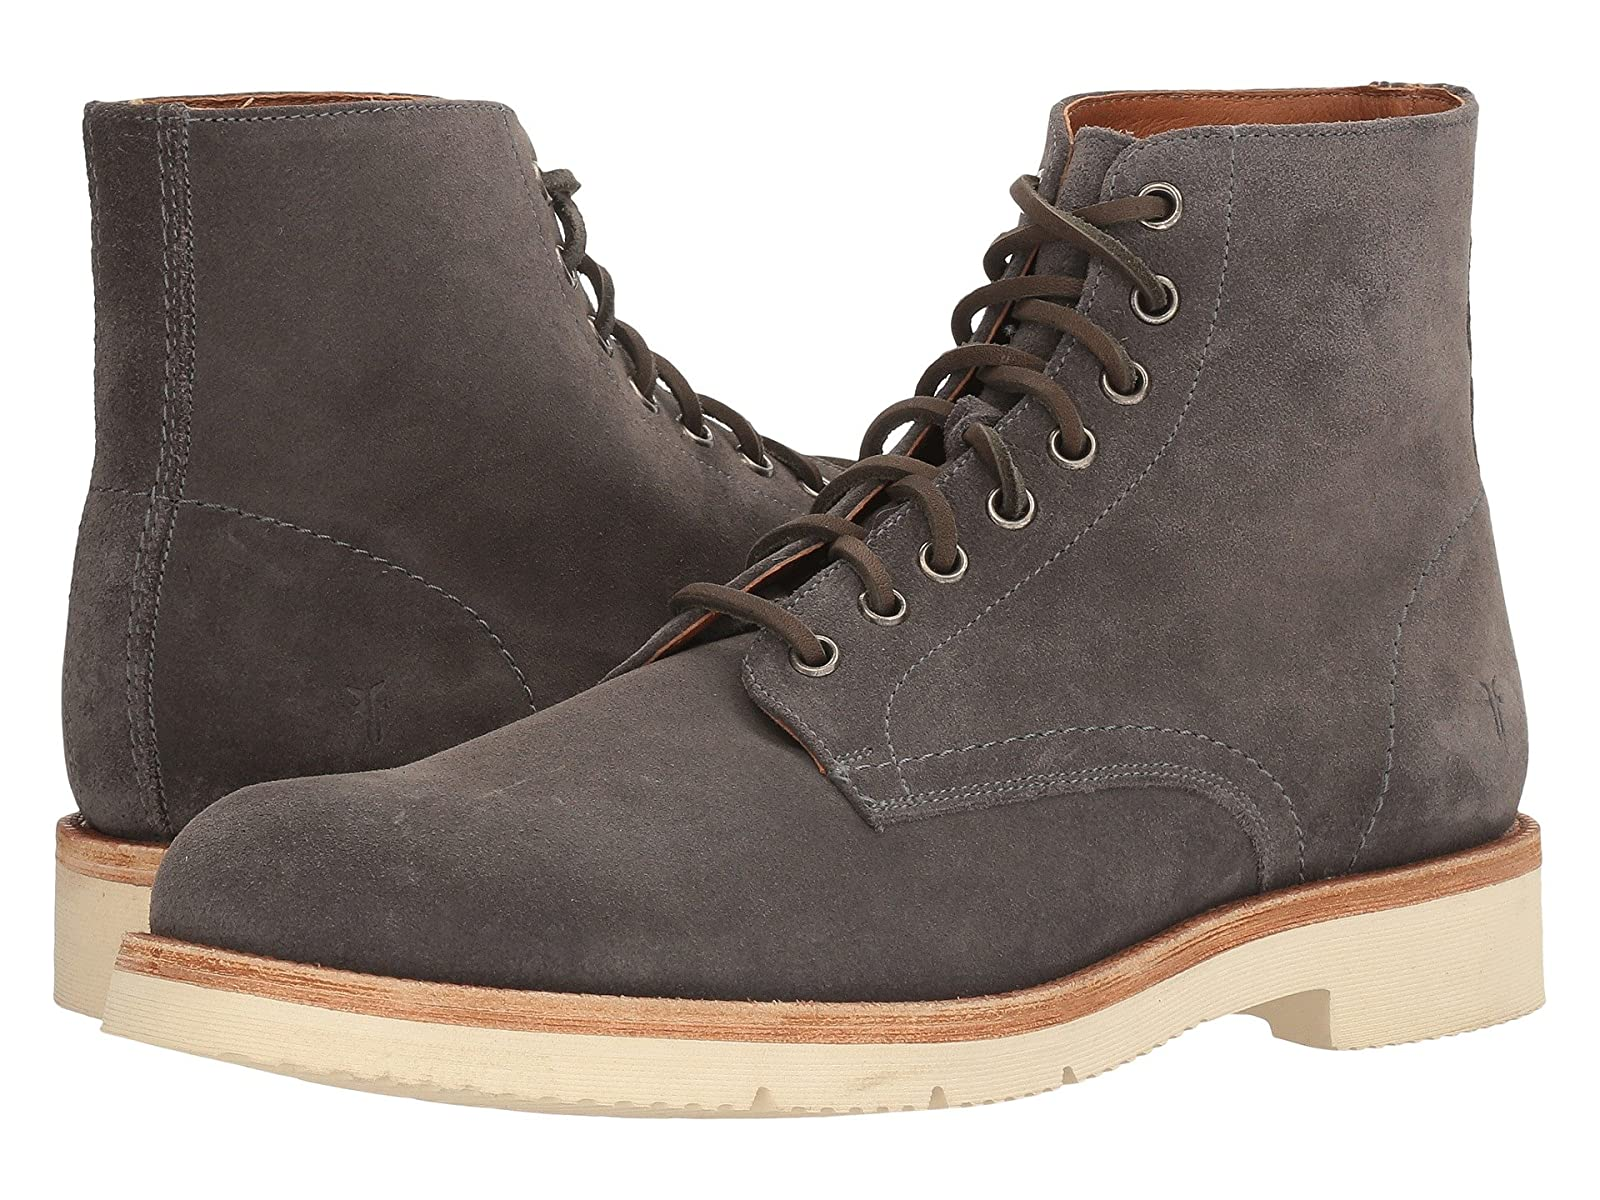 Frye Eric Lace-UpCheap and distinctive eye-catching shoes